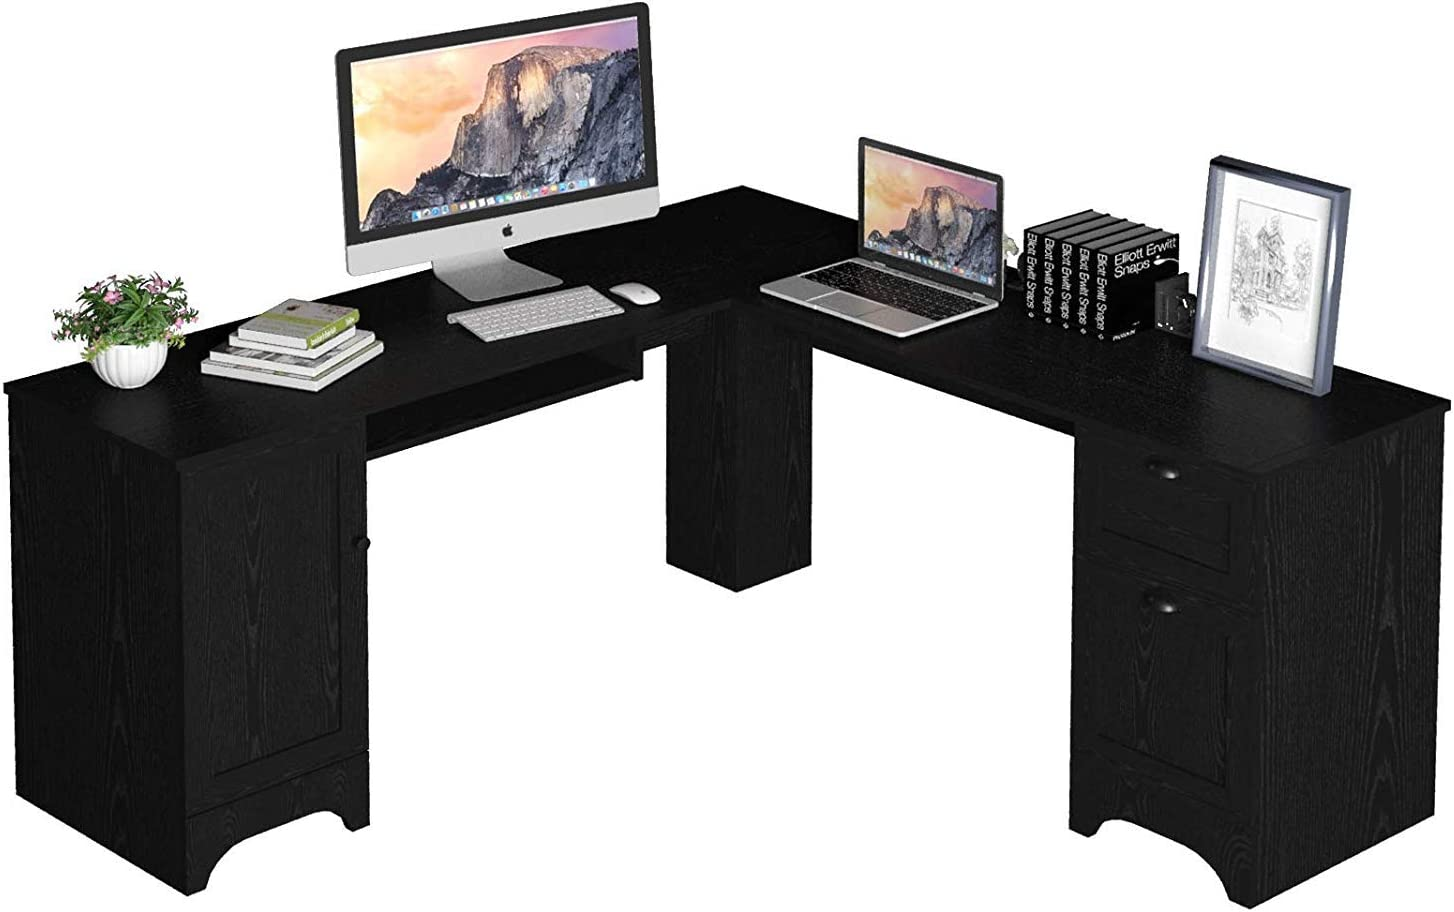 """Tangkula 66.5"""" ×66.5"""" L-Shaped Desk, Modern Corner Computer Table with Drawers and Adjustable Shelf, Study Writing Table Workstation for Home Office (Black)"""